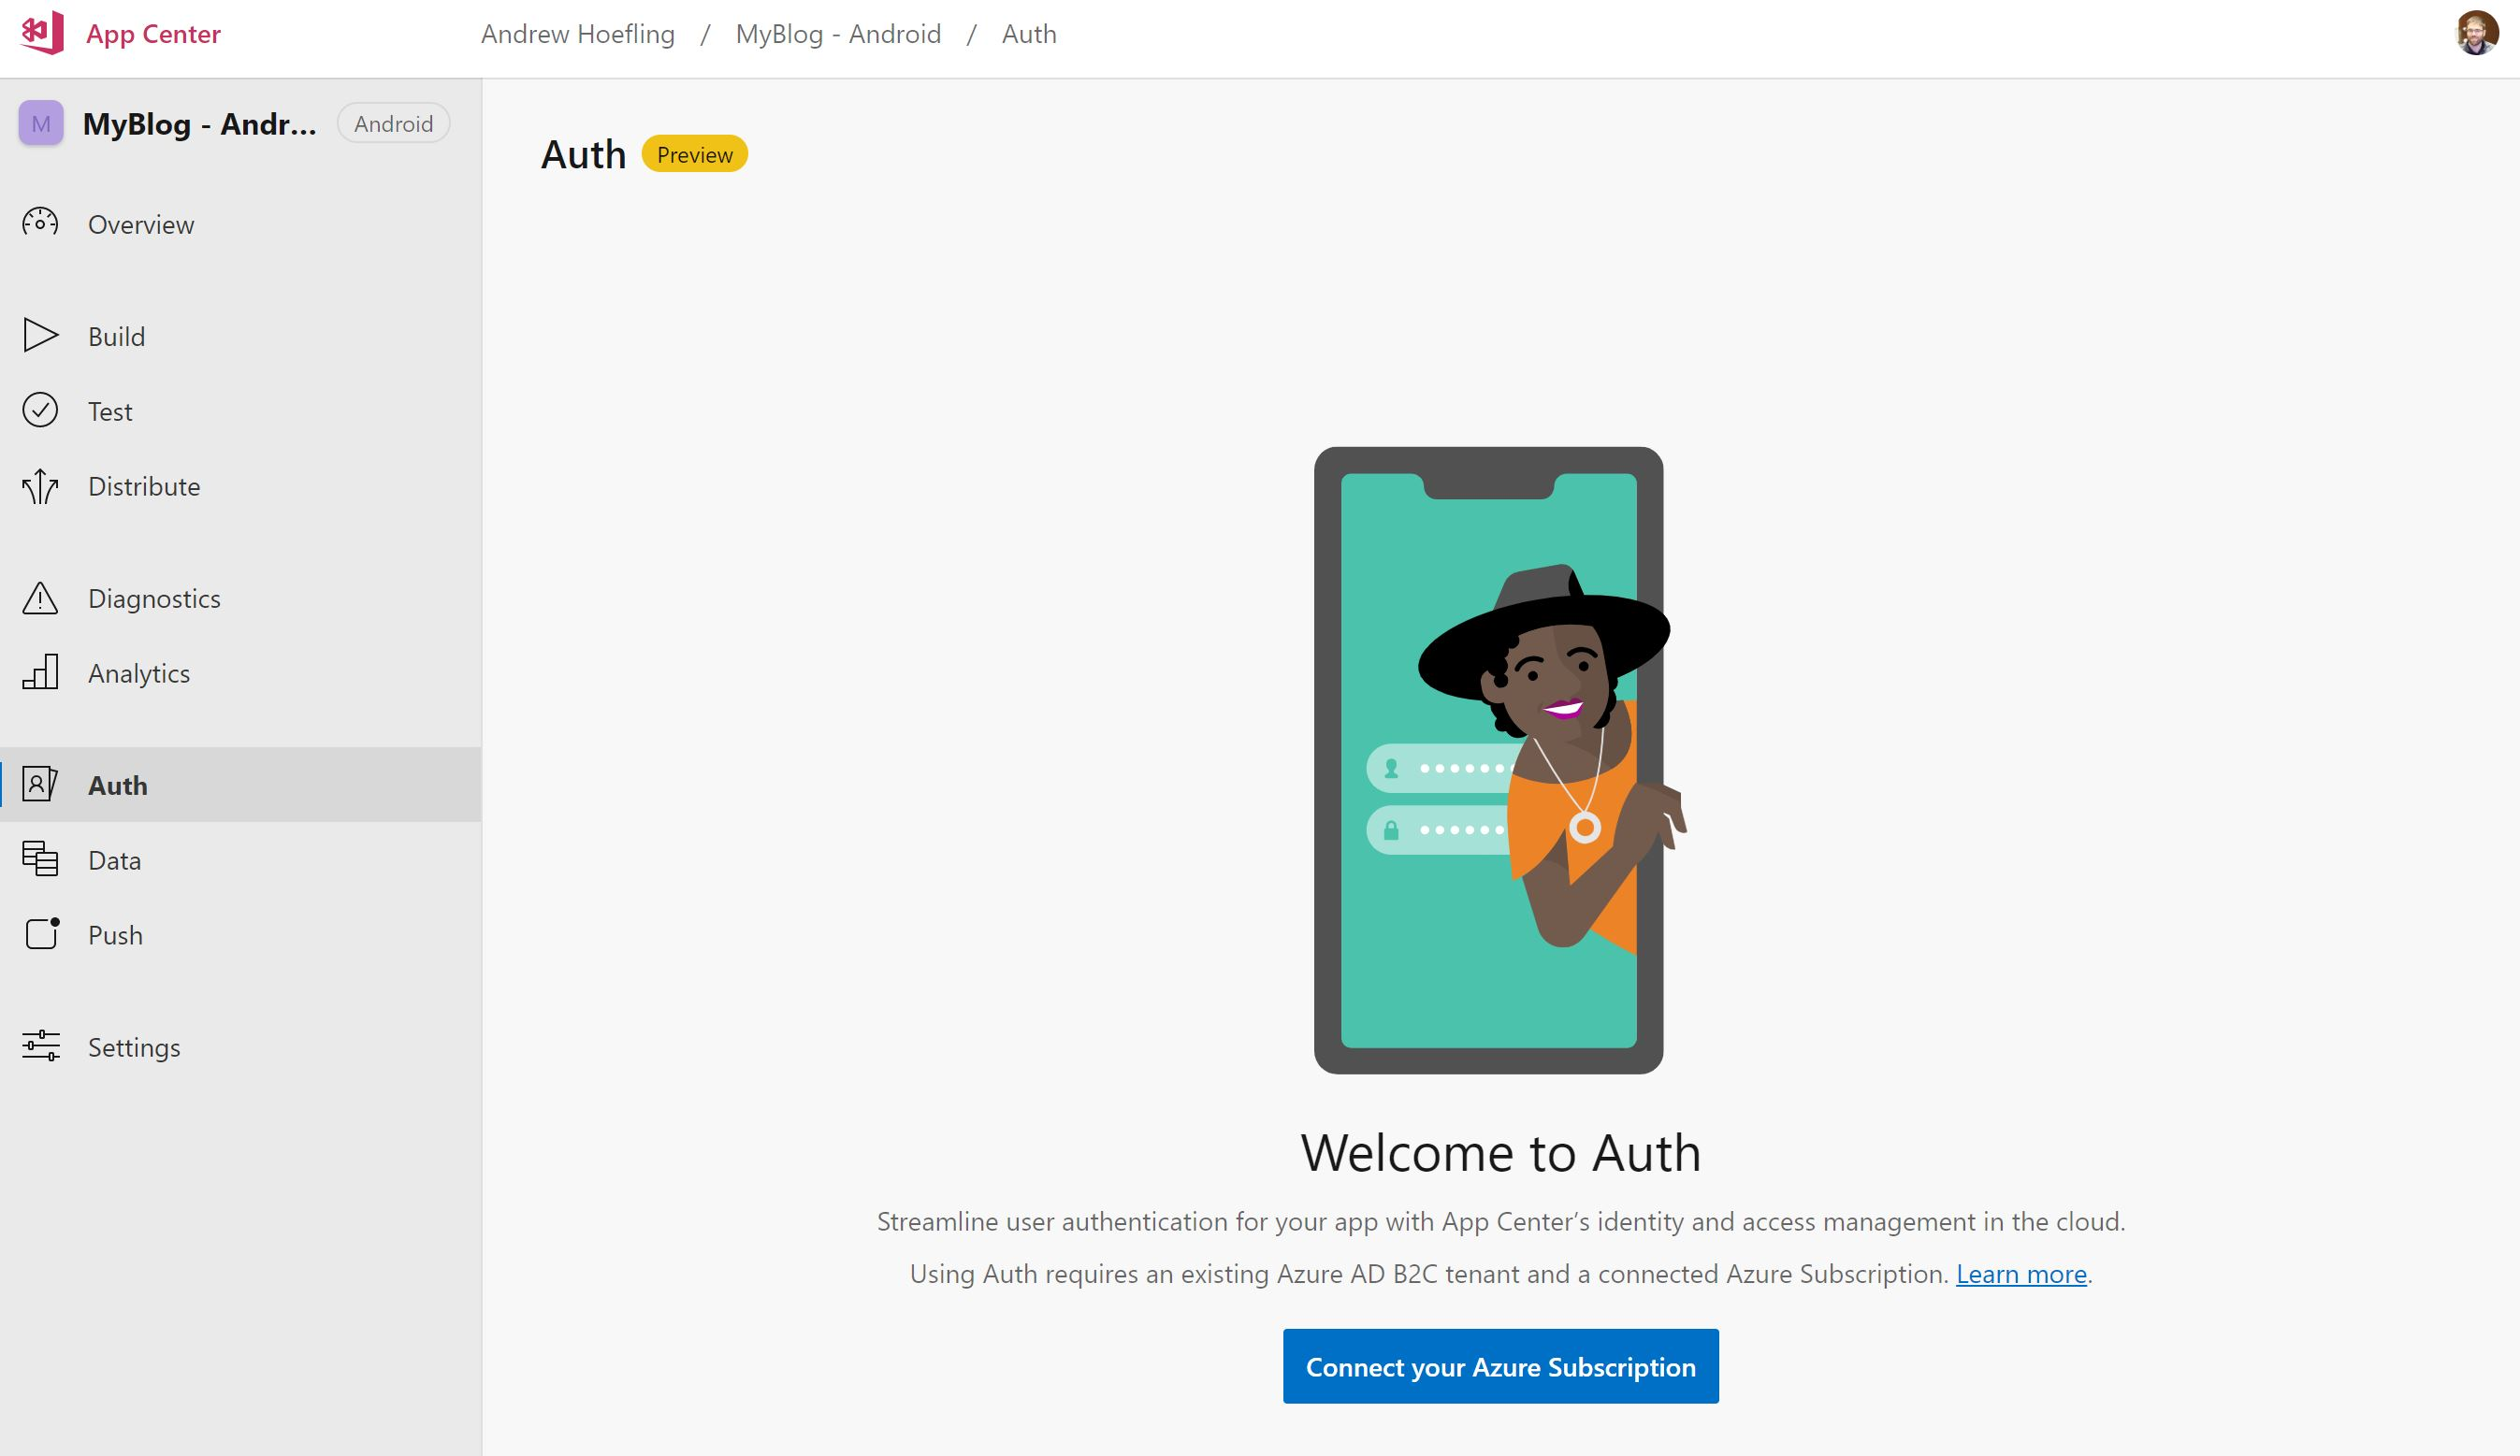 AppCenter: Data, Auth and Push